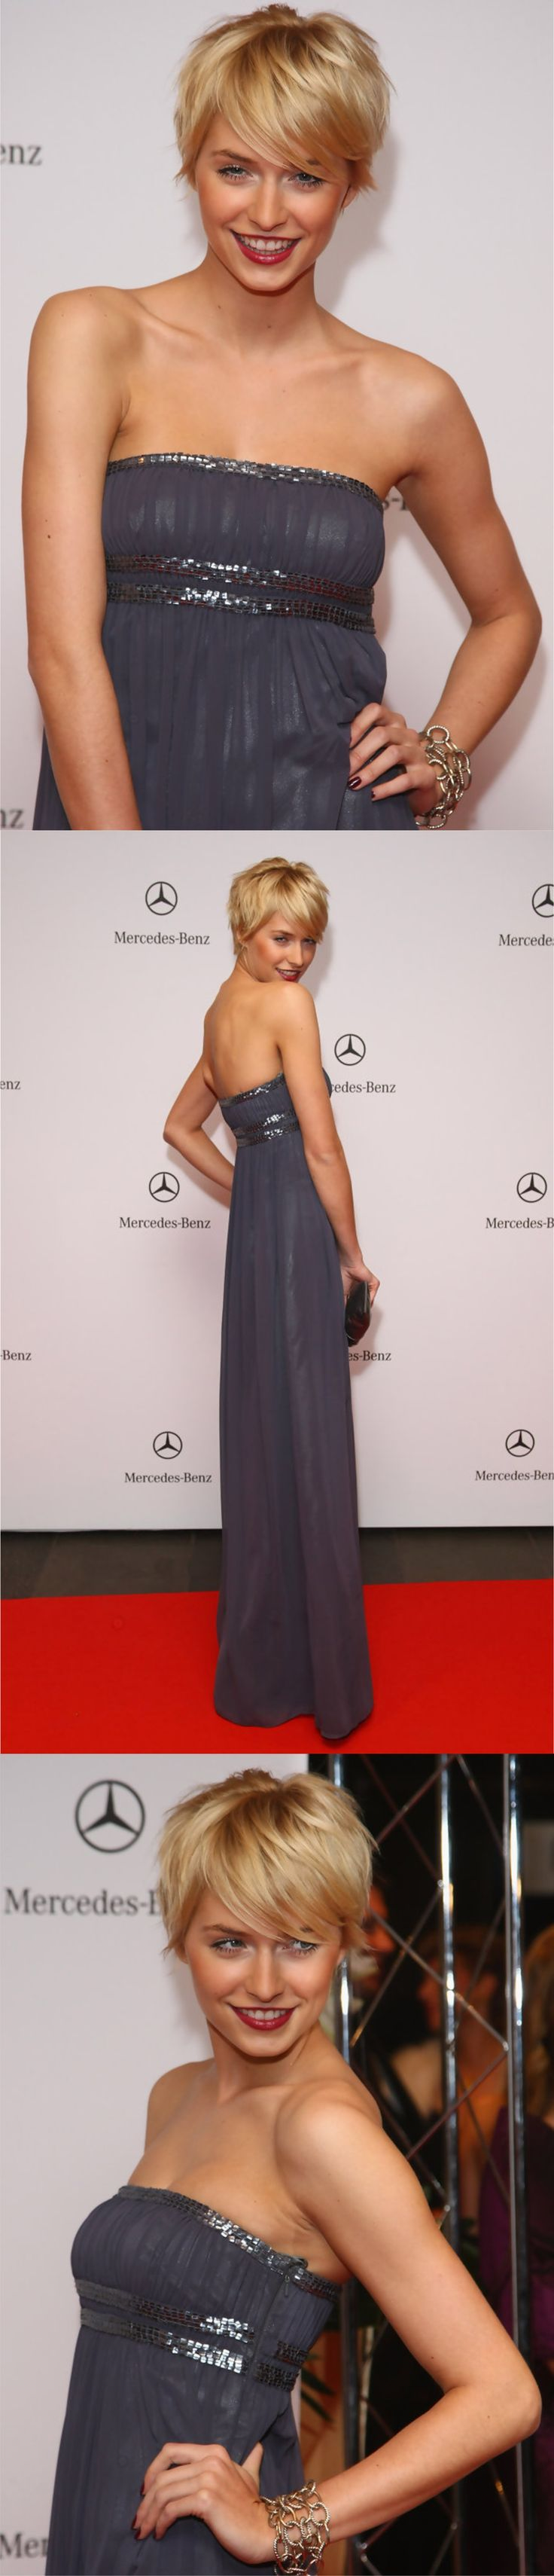 Lena Gercke attends the 15th AIDS Gala at the Deutsche Oper on November 8, 2008 in Berlin, Germany.